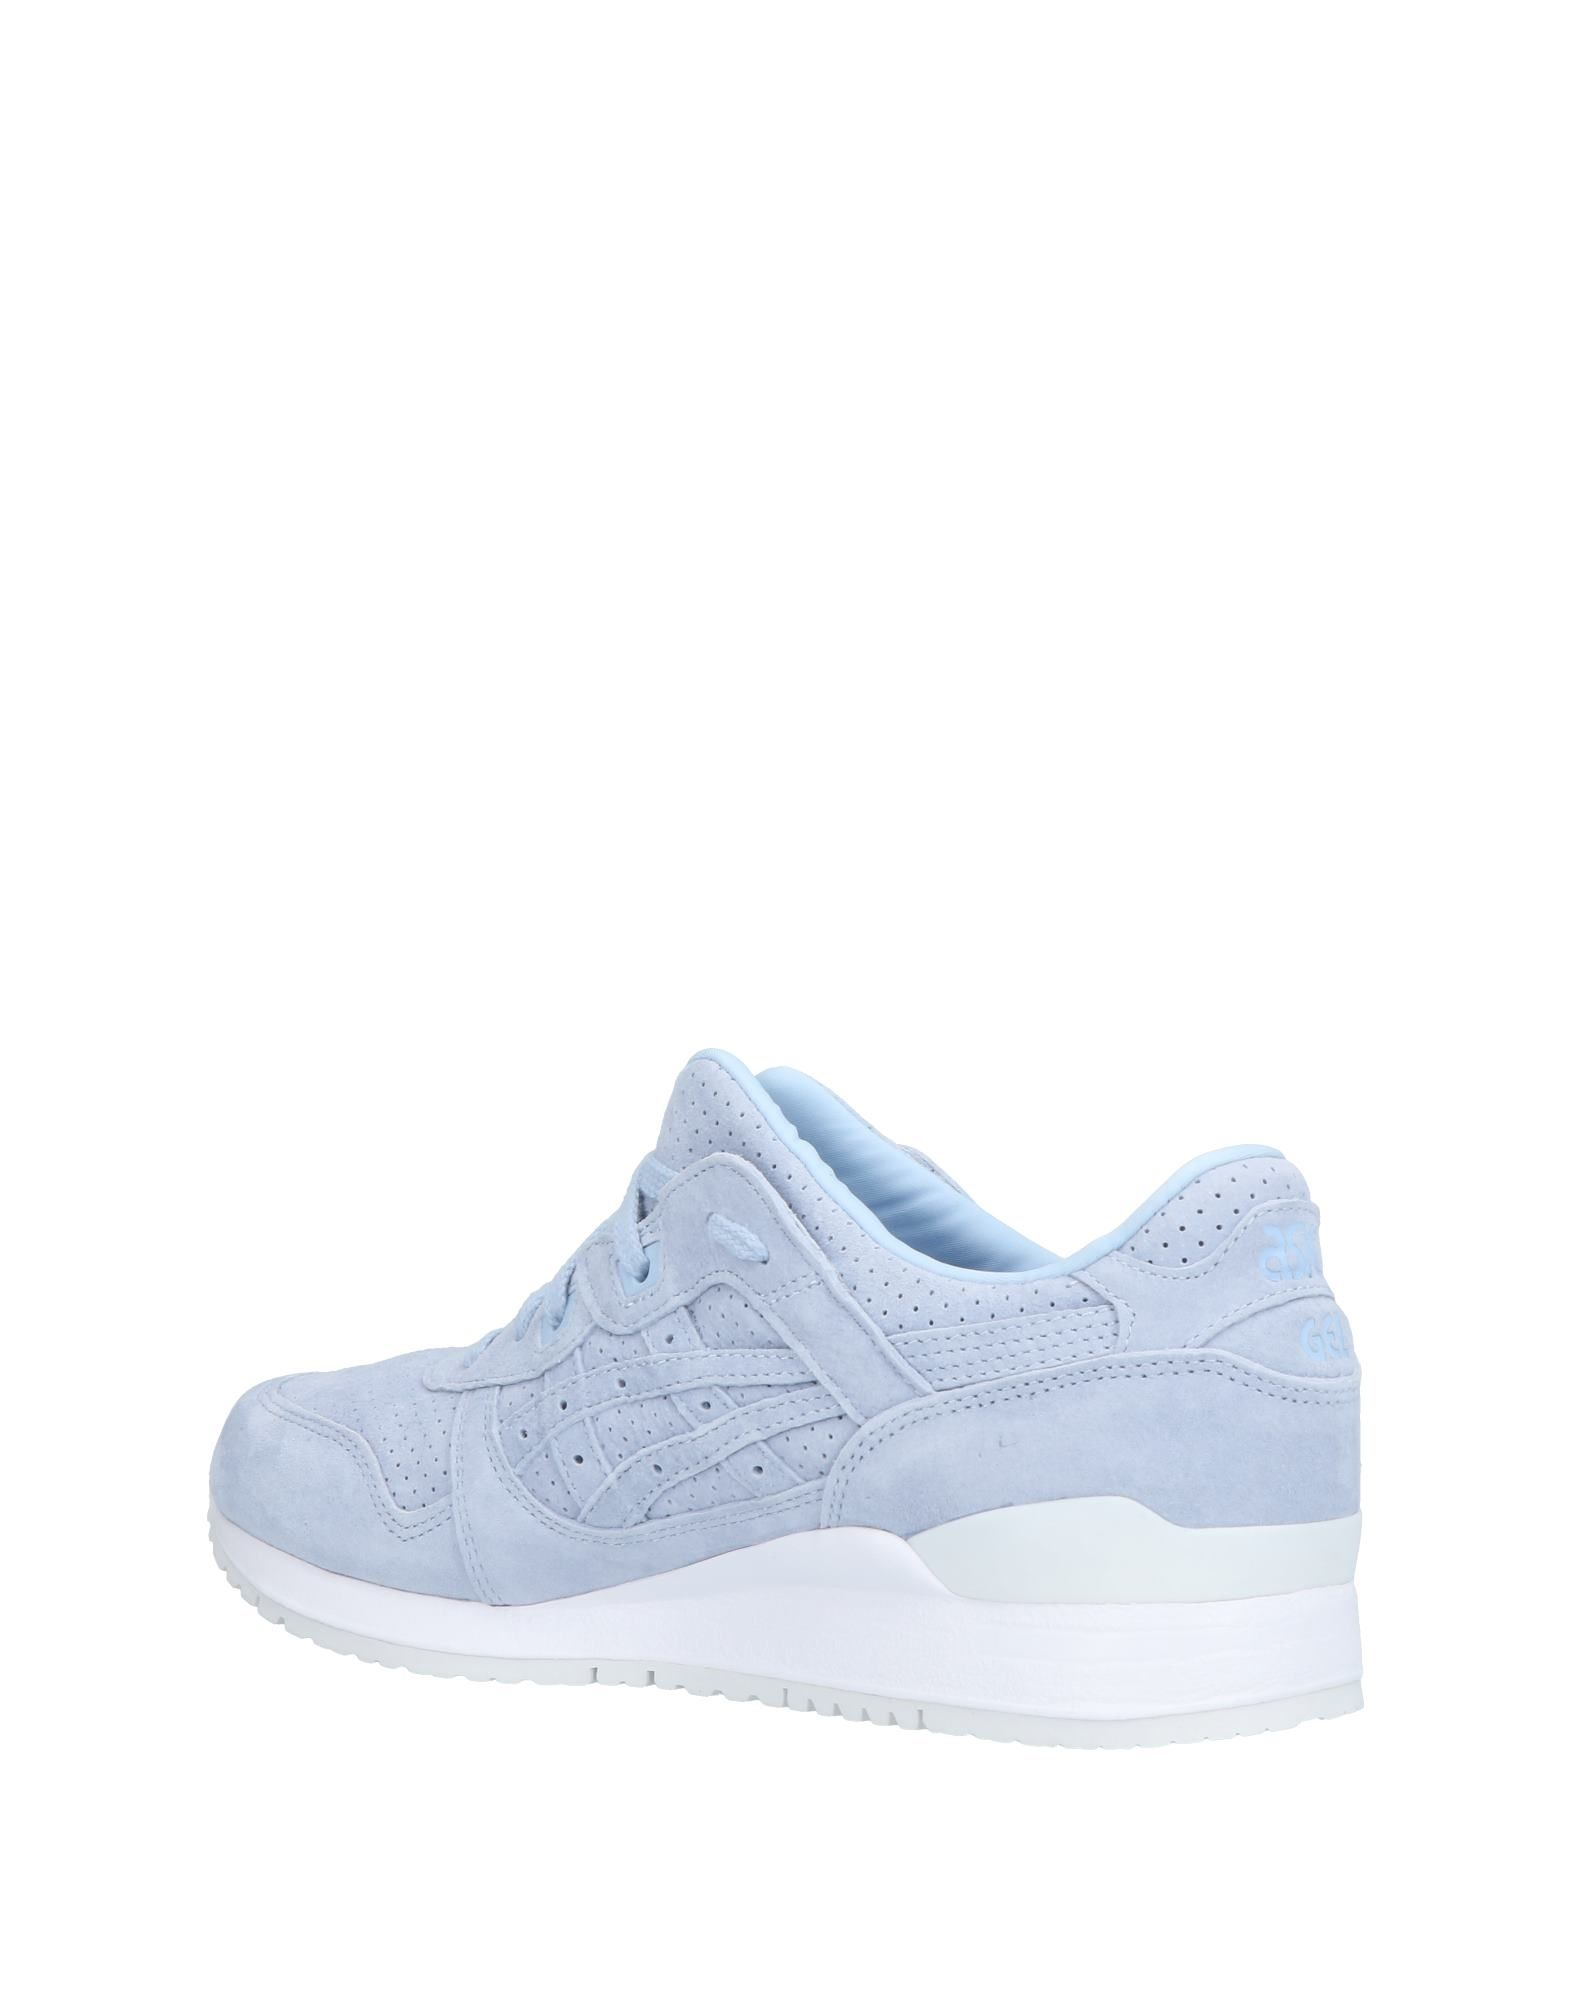 Sneakers Asics Femme - Sneakers Asics sur